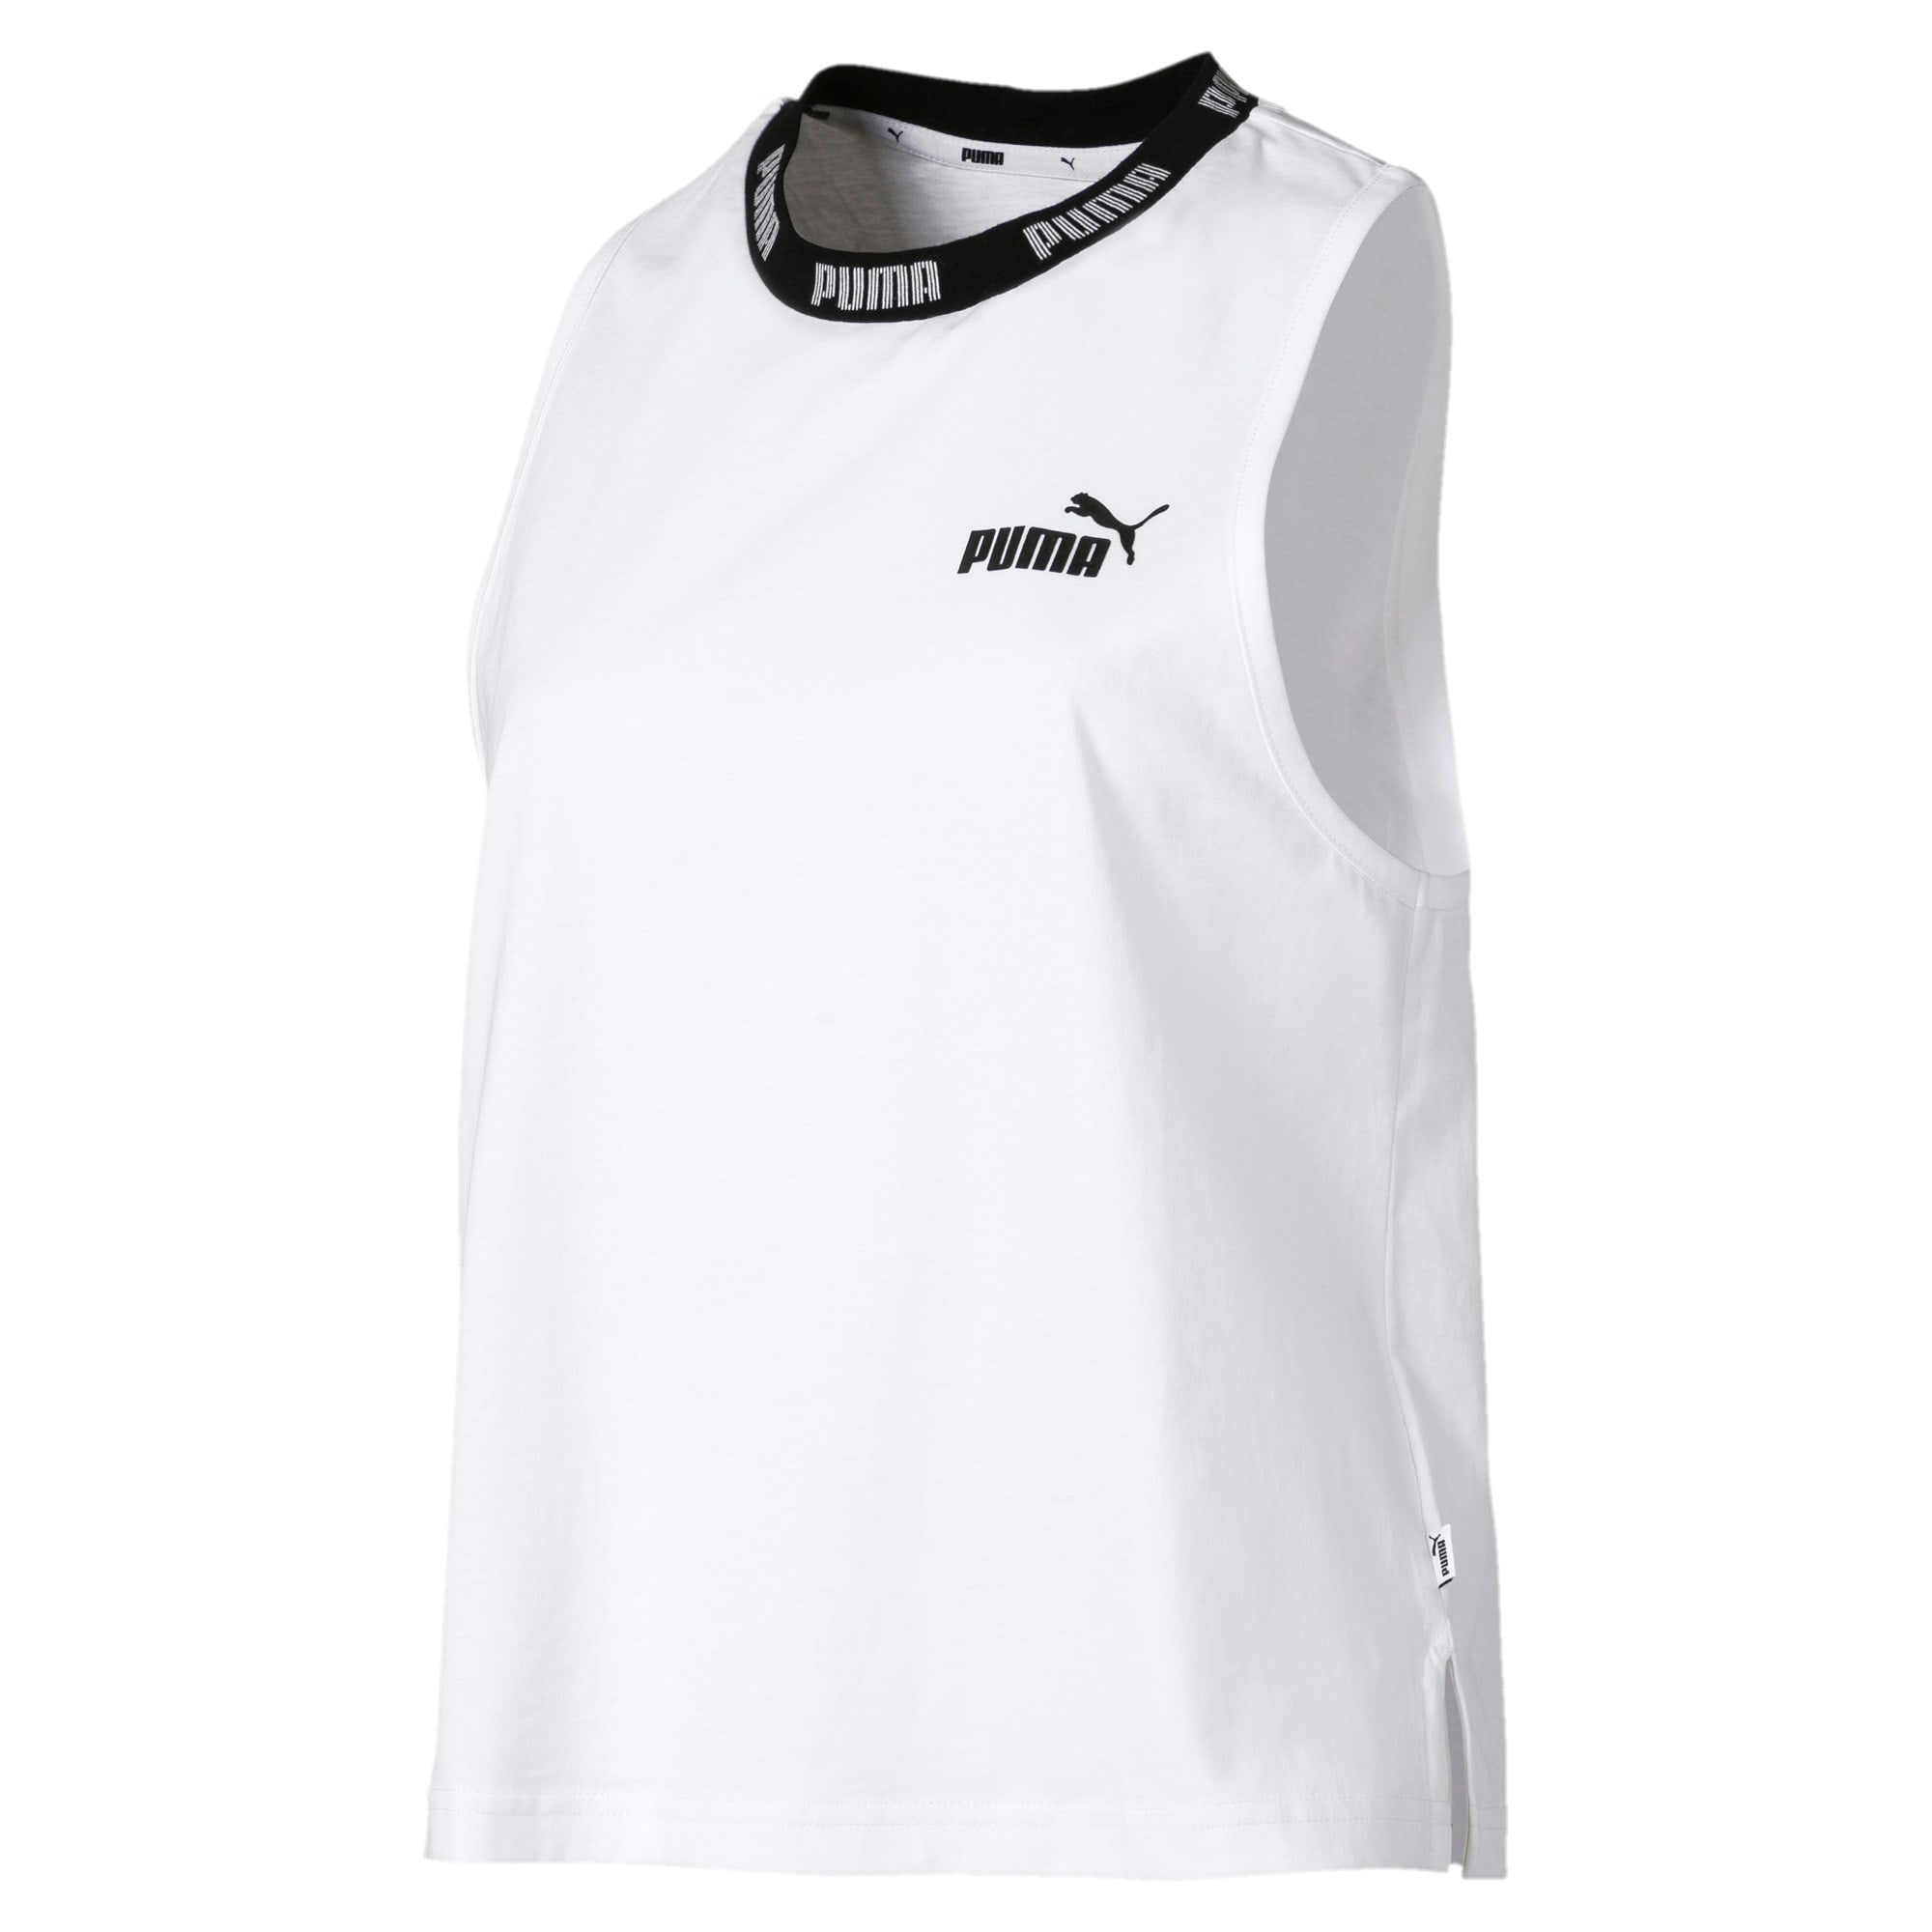 Amplified Women's Tank Top, Puma White, large